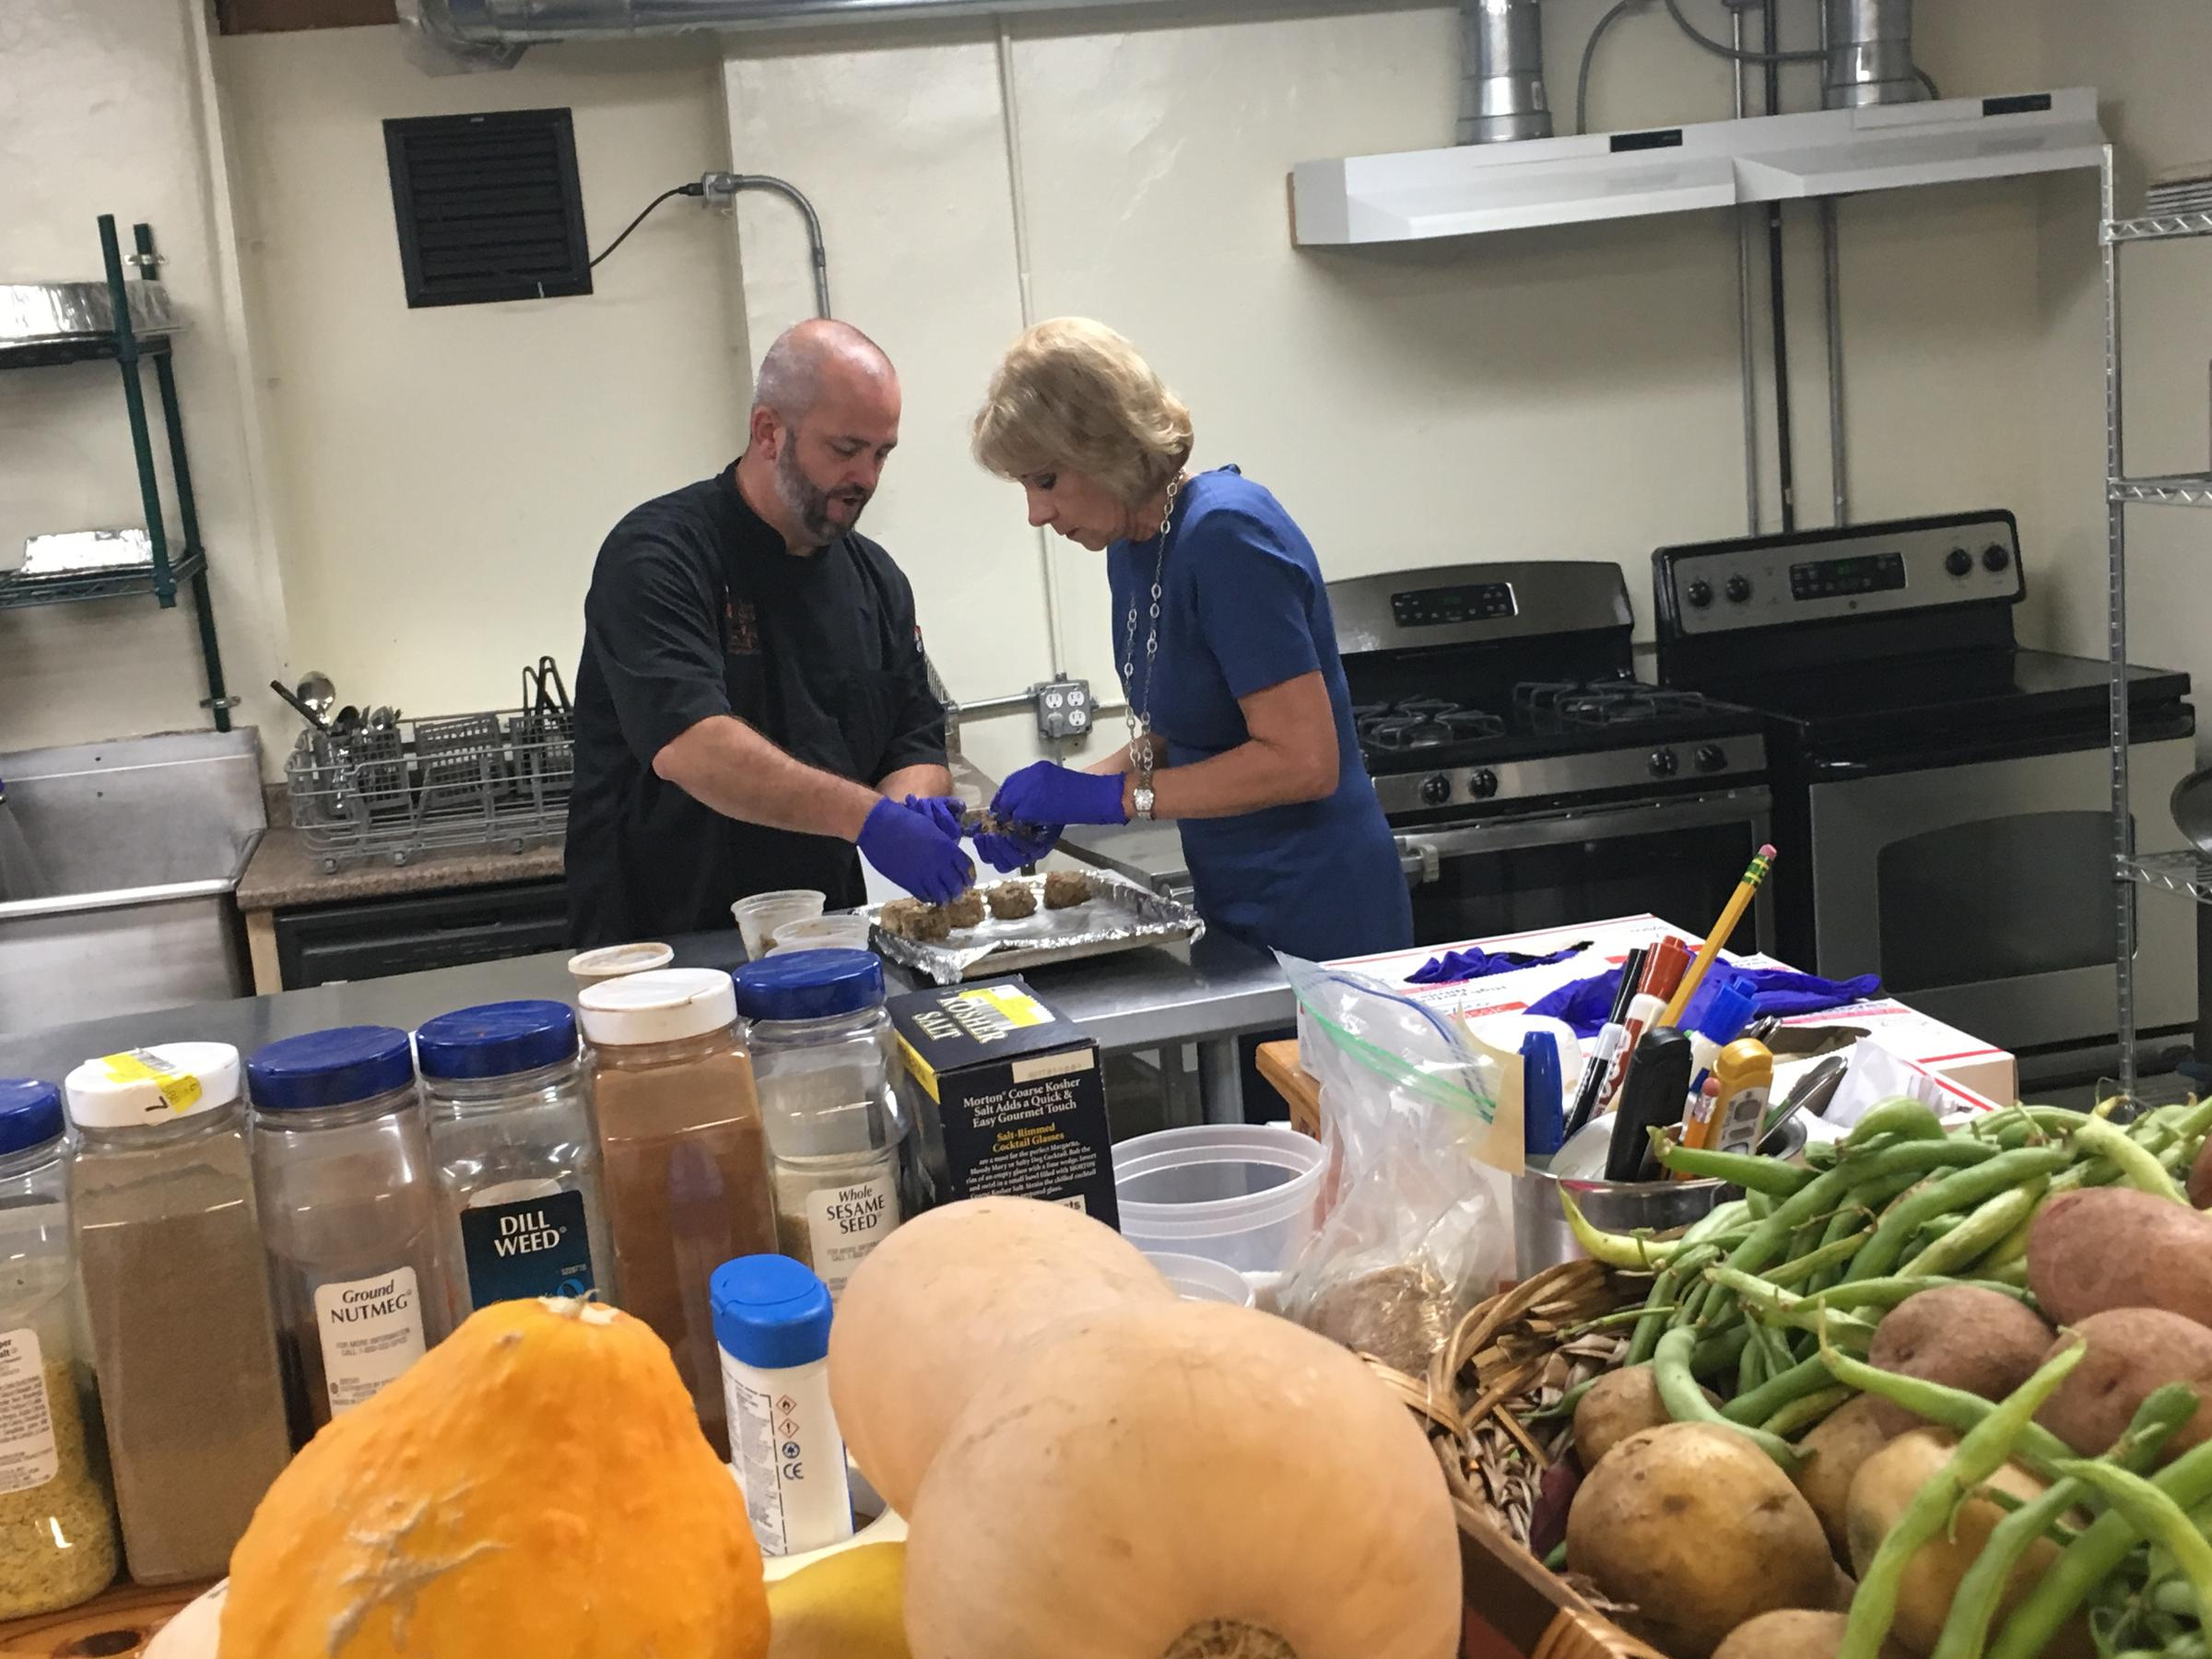 Kansas City Academy Chef Mark Zukaitis teaches U.S. Secretary of Education Betsy De Vos to make veggie burgers. The school makes theirs with leftover rice and beans from the previous day's lunch